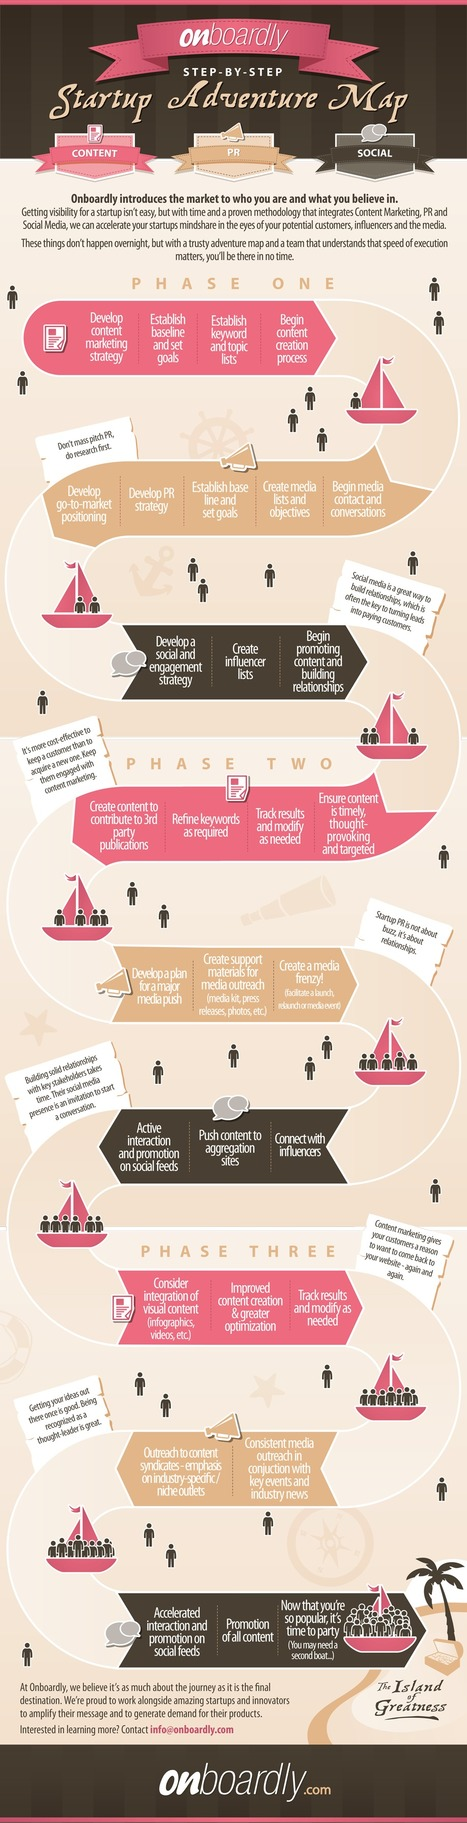 Steps On How to Acquire Customers For Your Startup [INFOGRAPHIC] | | Startup Revolution | Scoop.it